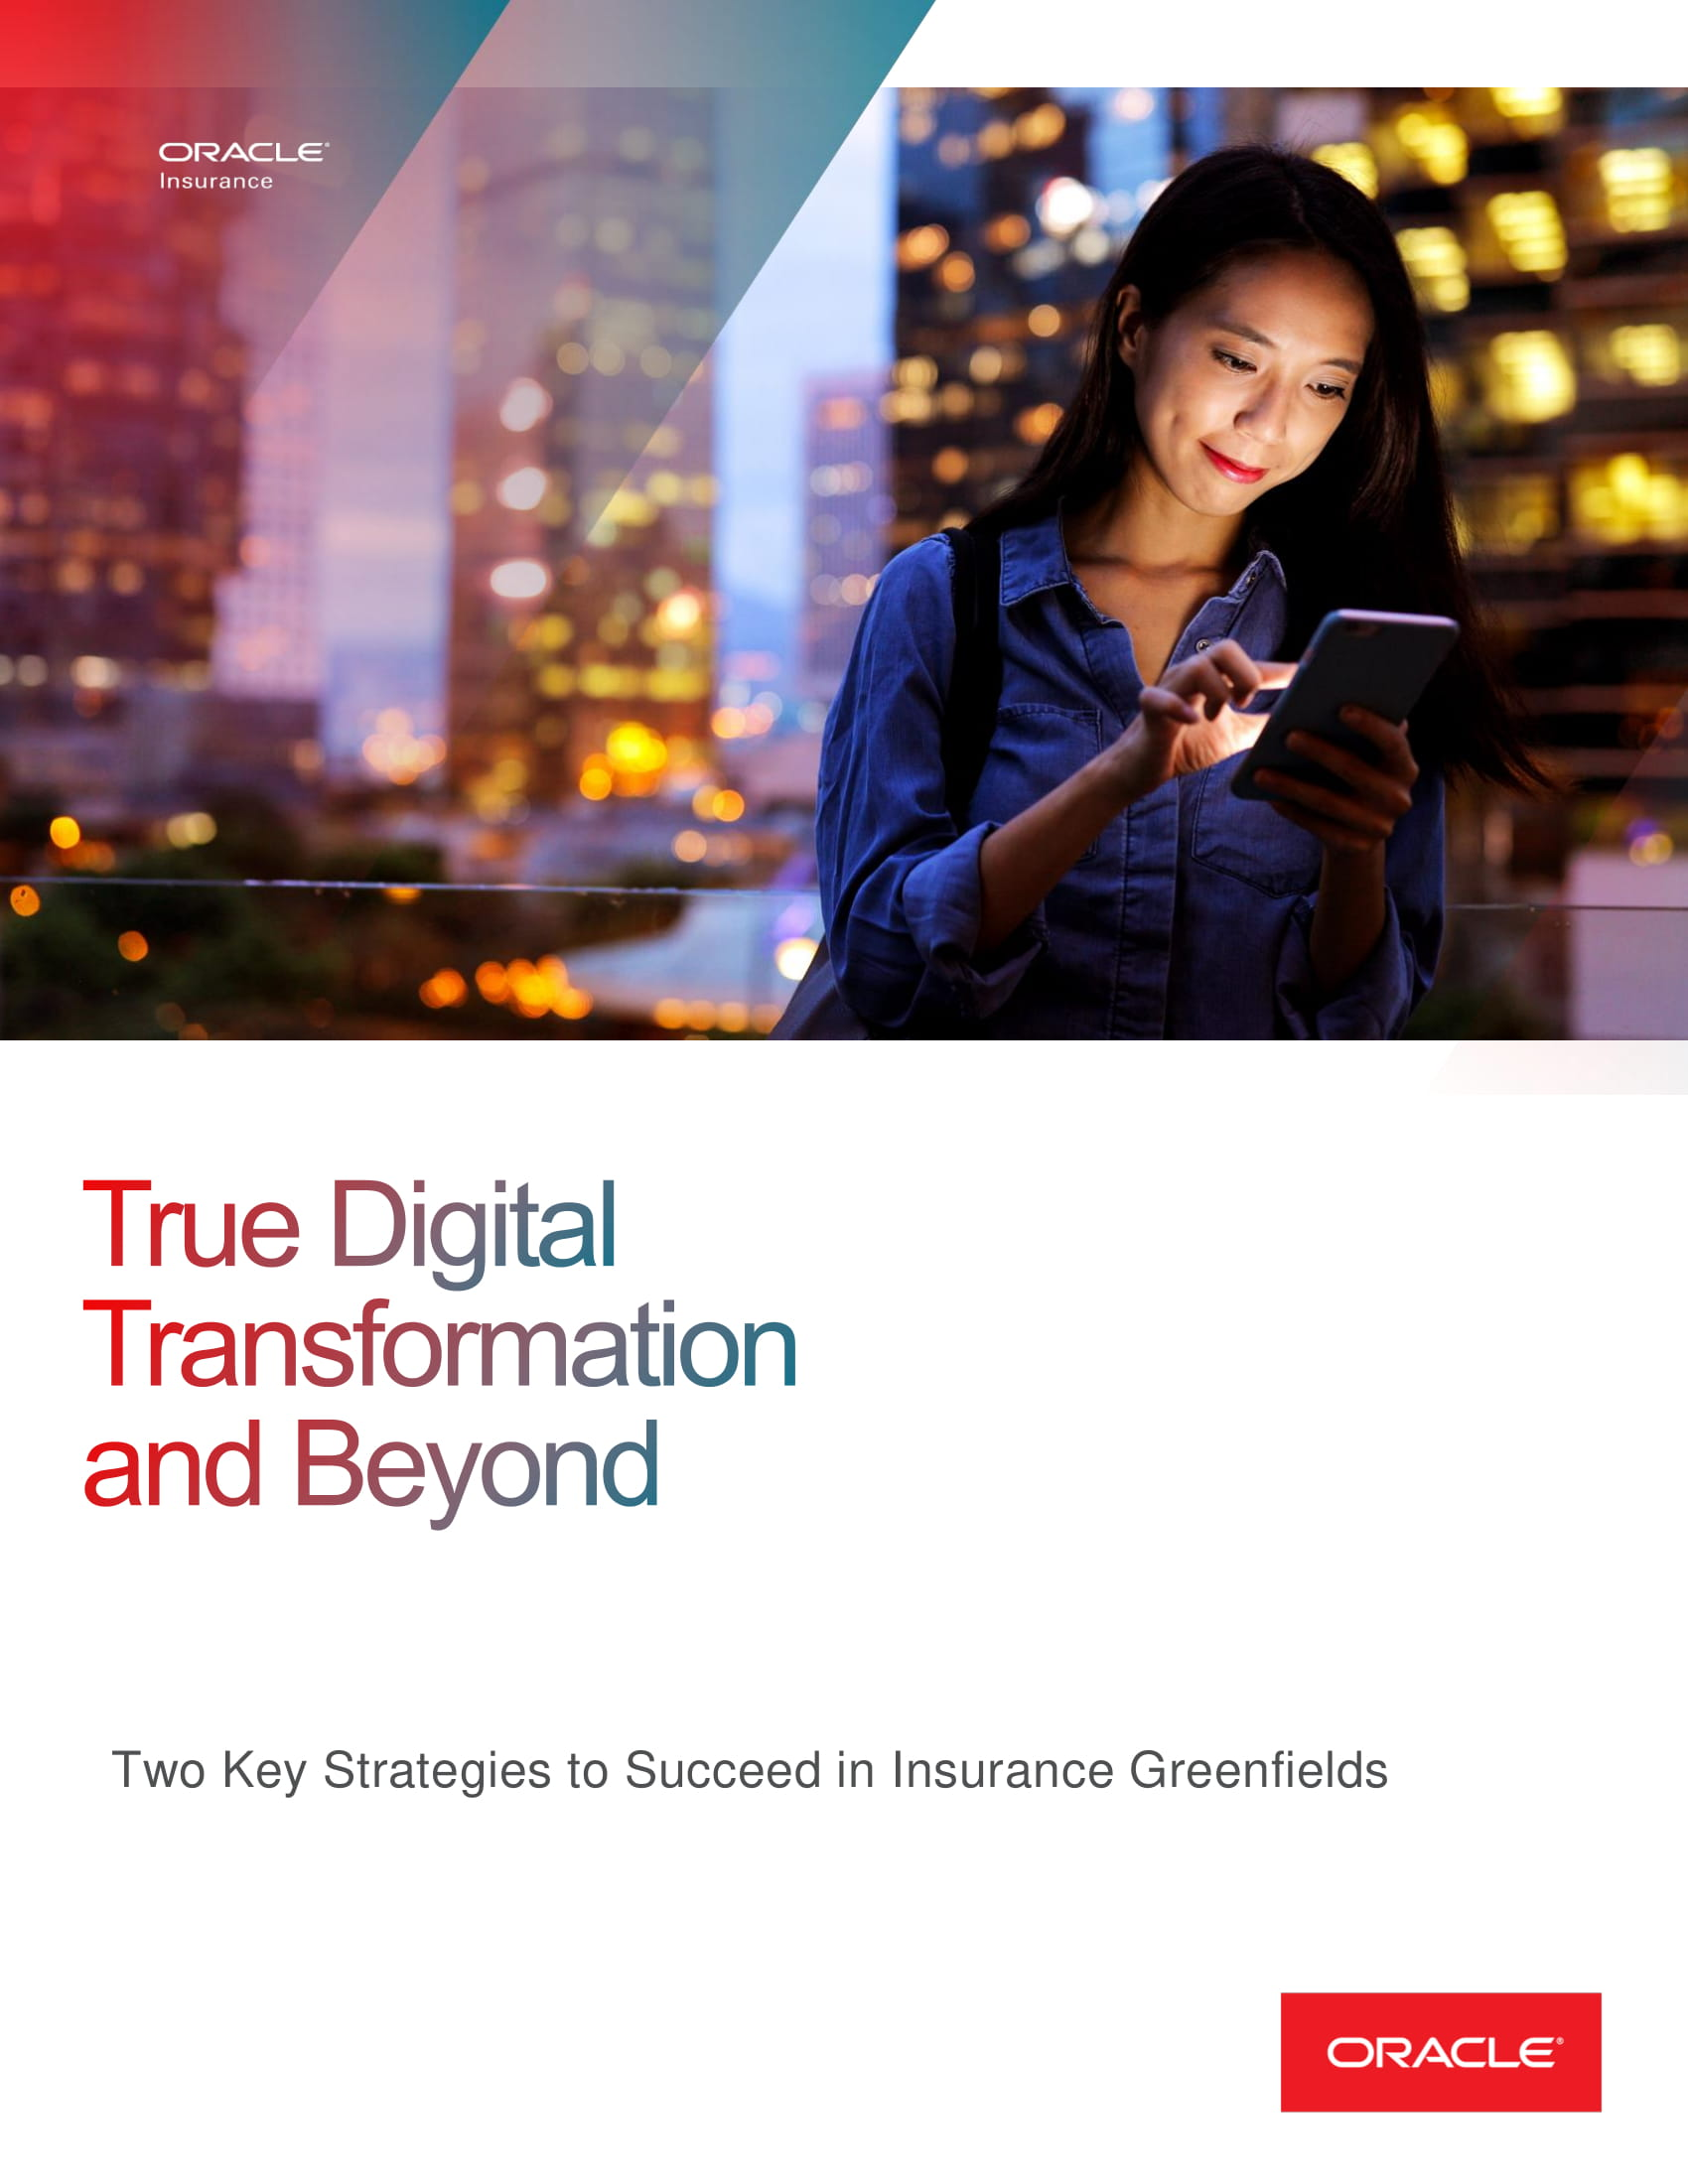 True Digital Transformation and Beyond